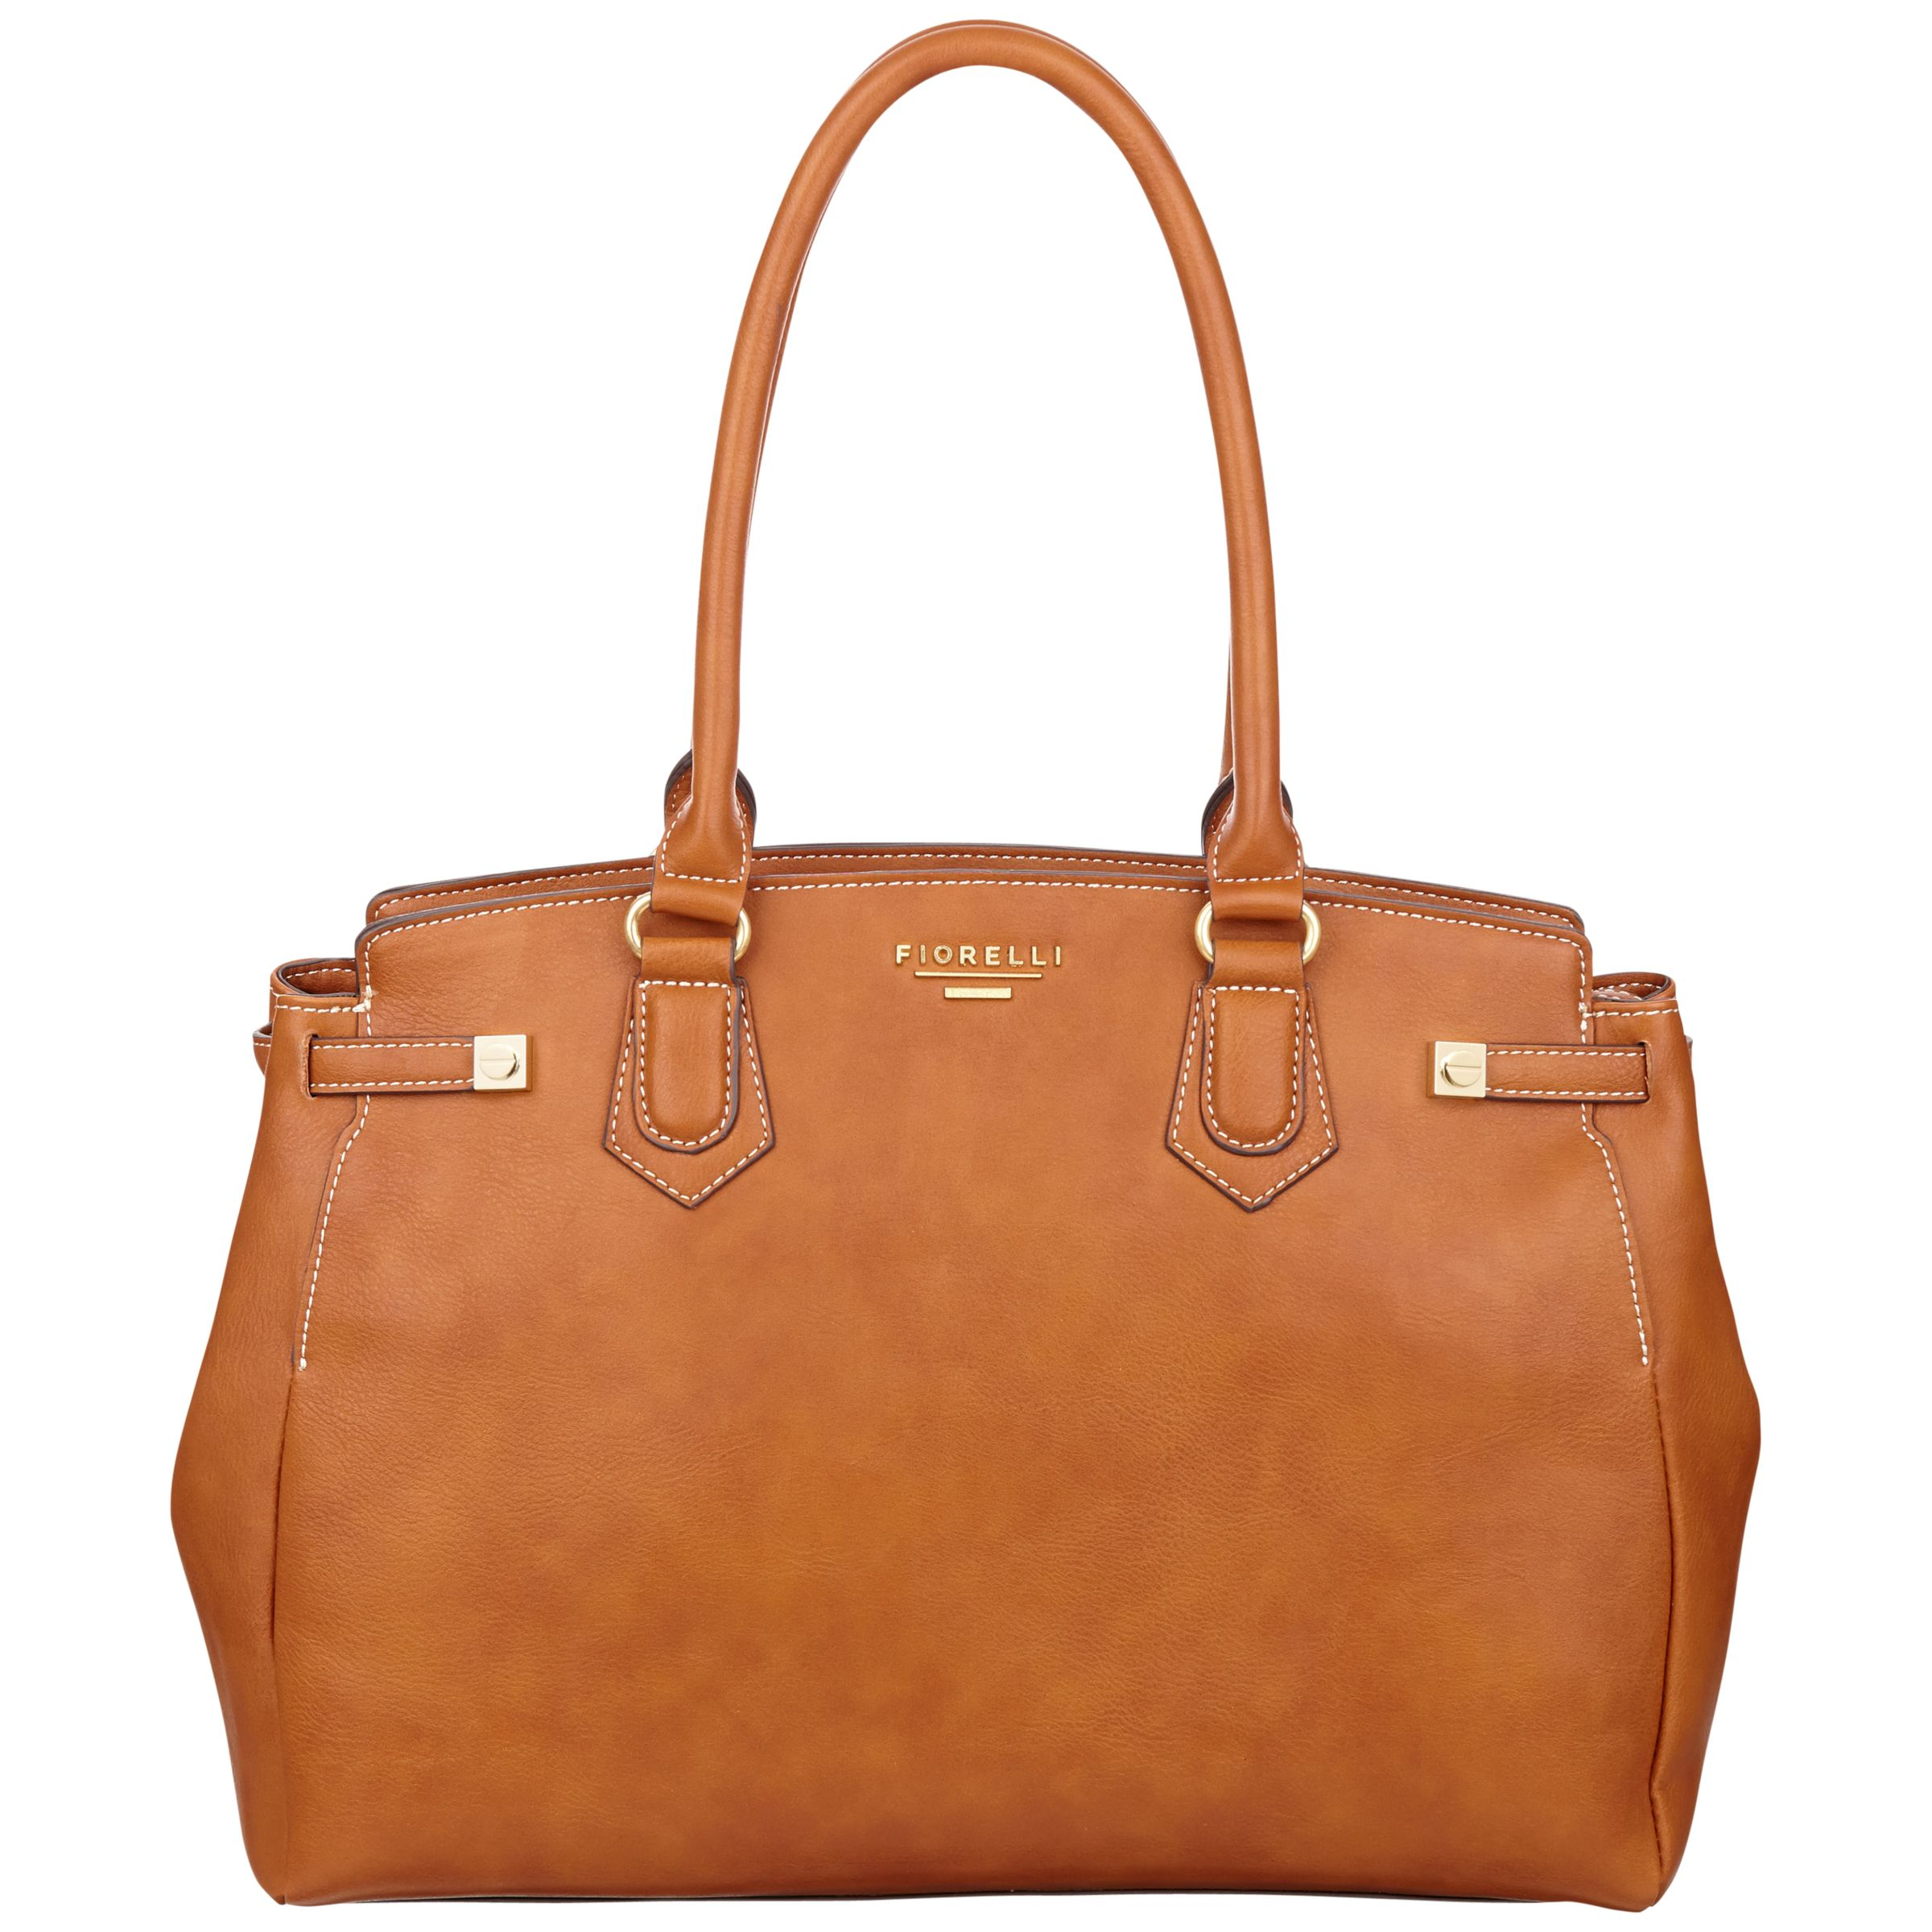 Fiorelli Handbags Shopper Bag Fossil Lucy Clothing Accessories Bags